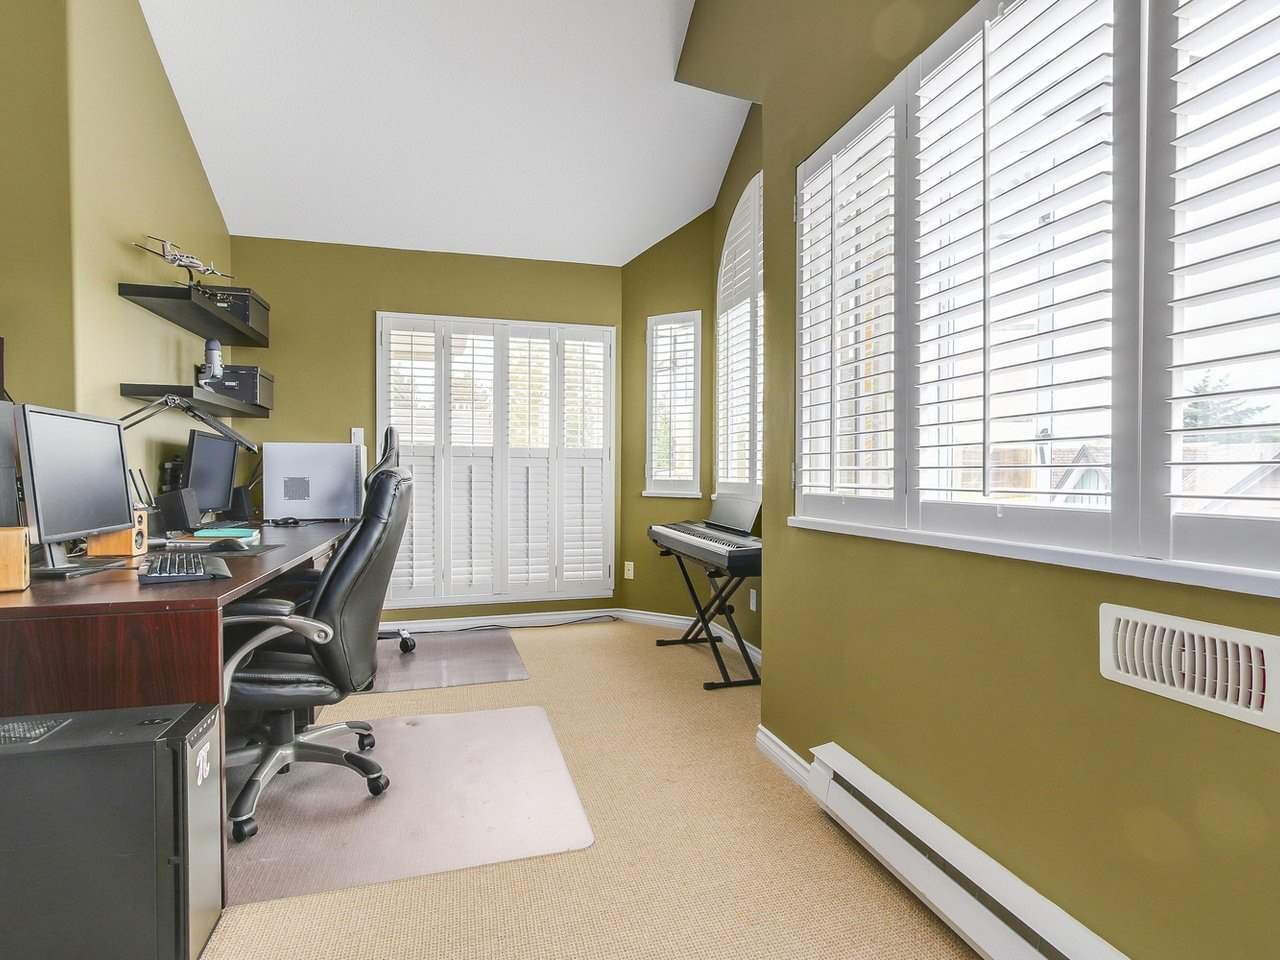 Photo 4: Photos: 304 8120 BENNETT Road in Richmond: Brighouse South Condo for sale : MLS®# R2191205